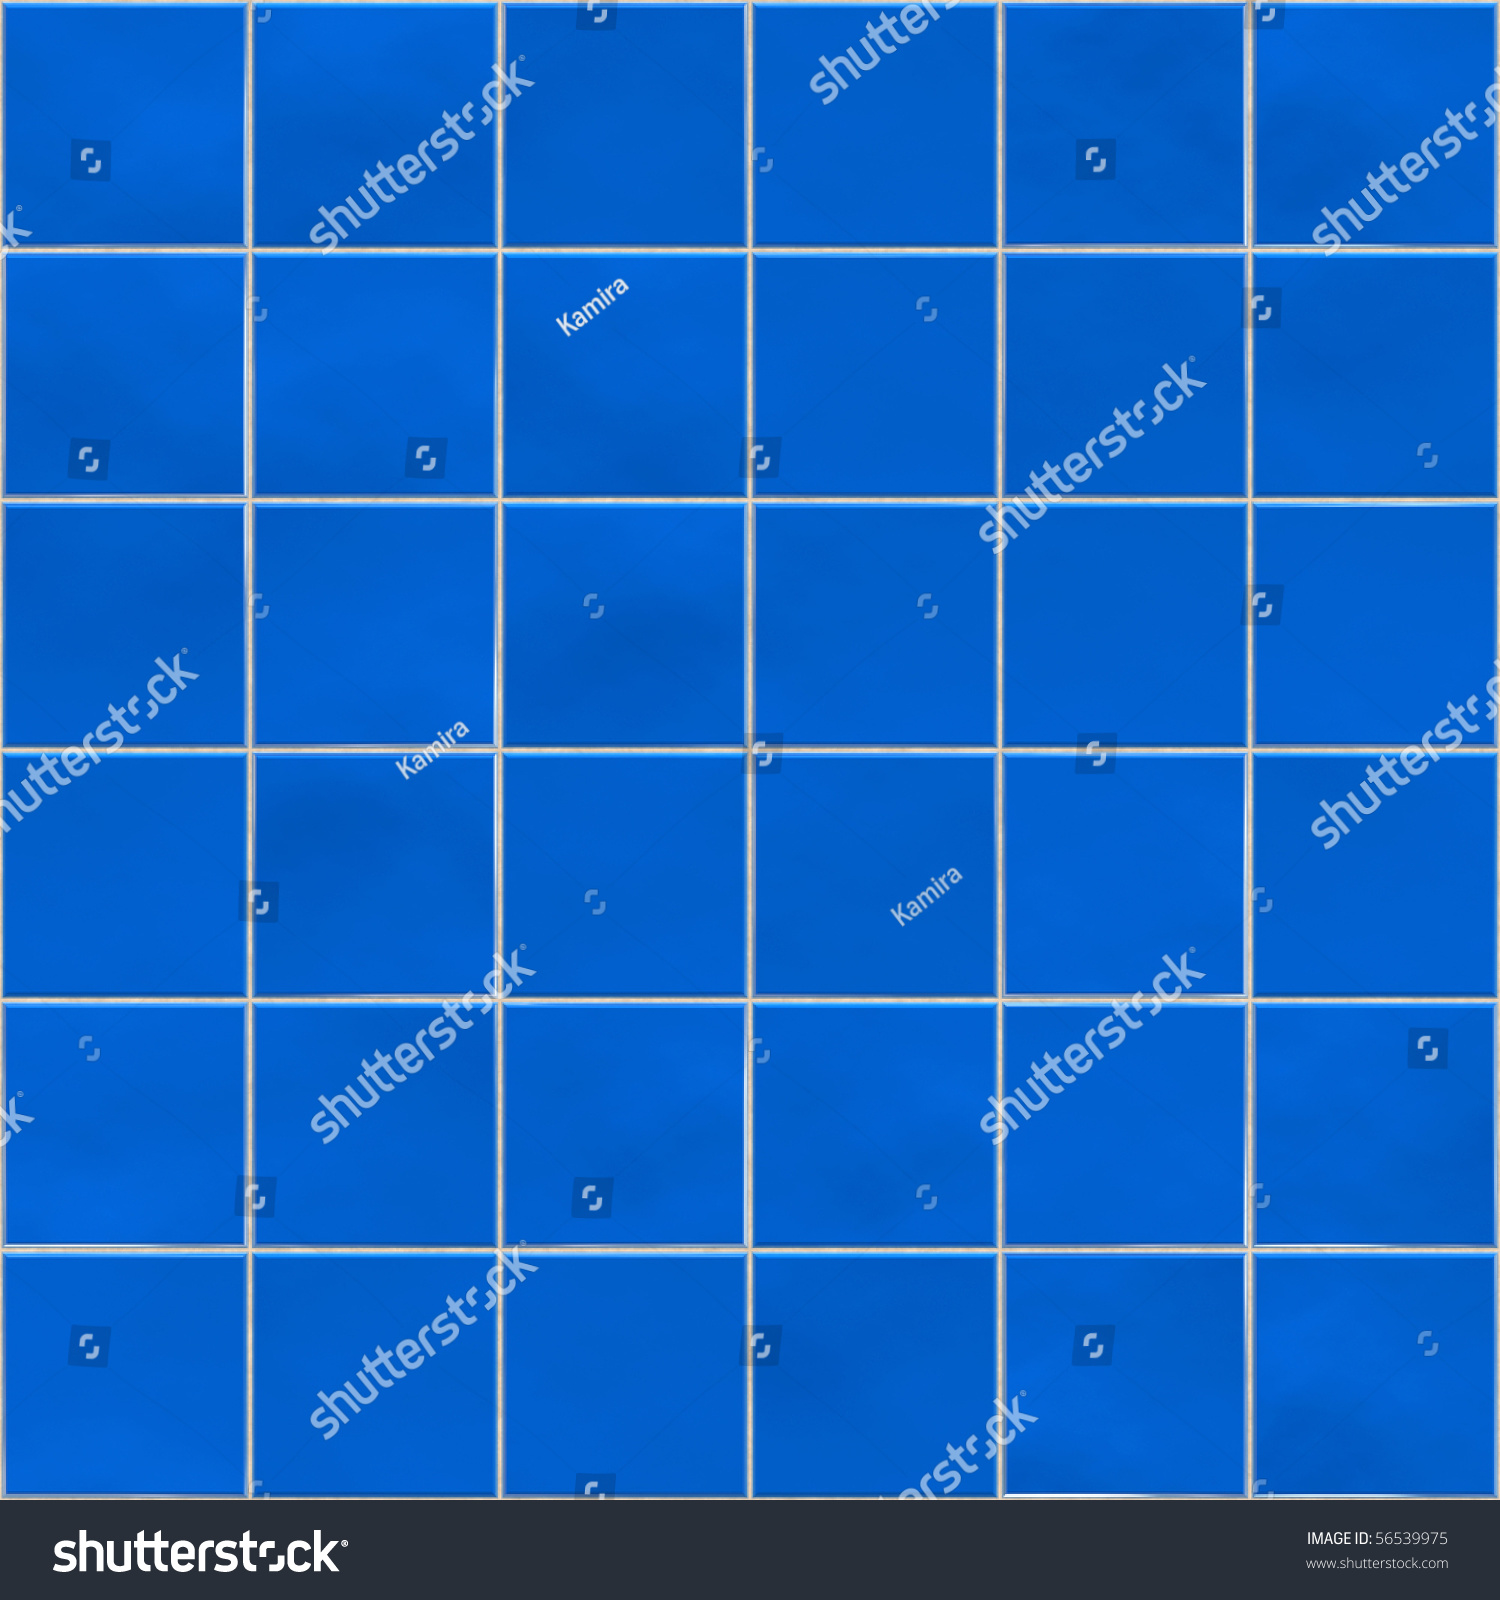 Bathroom Tiles Background perfect kitchen blue tiles texture generated seamless tile